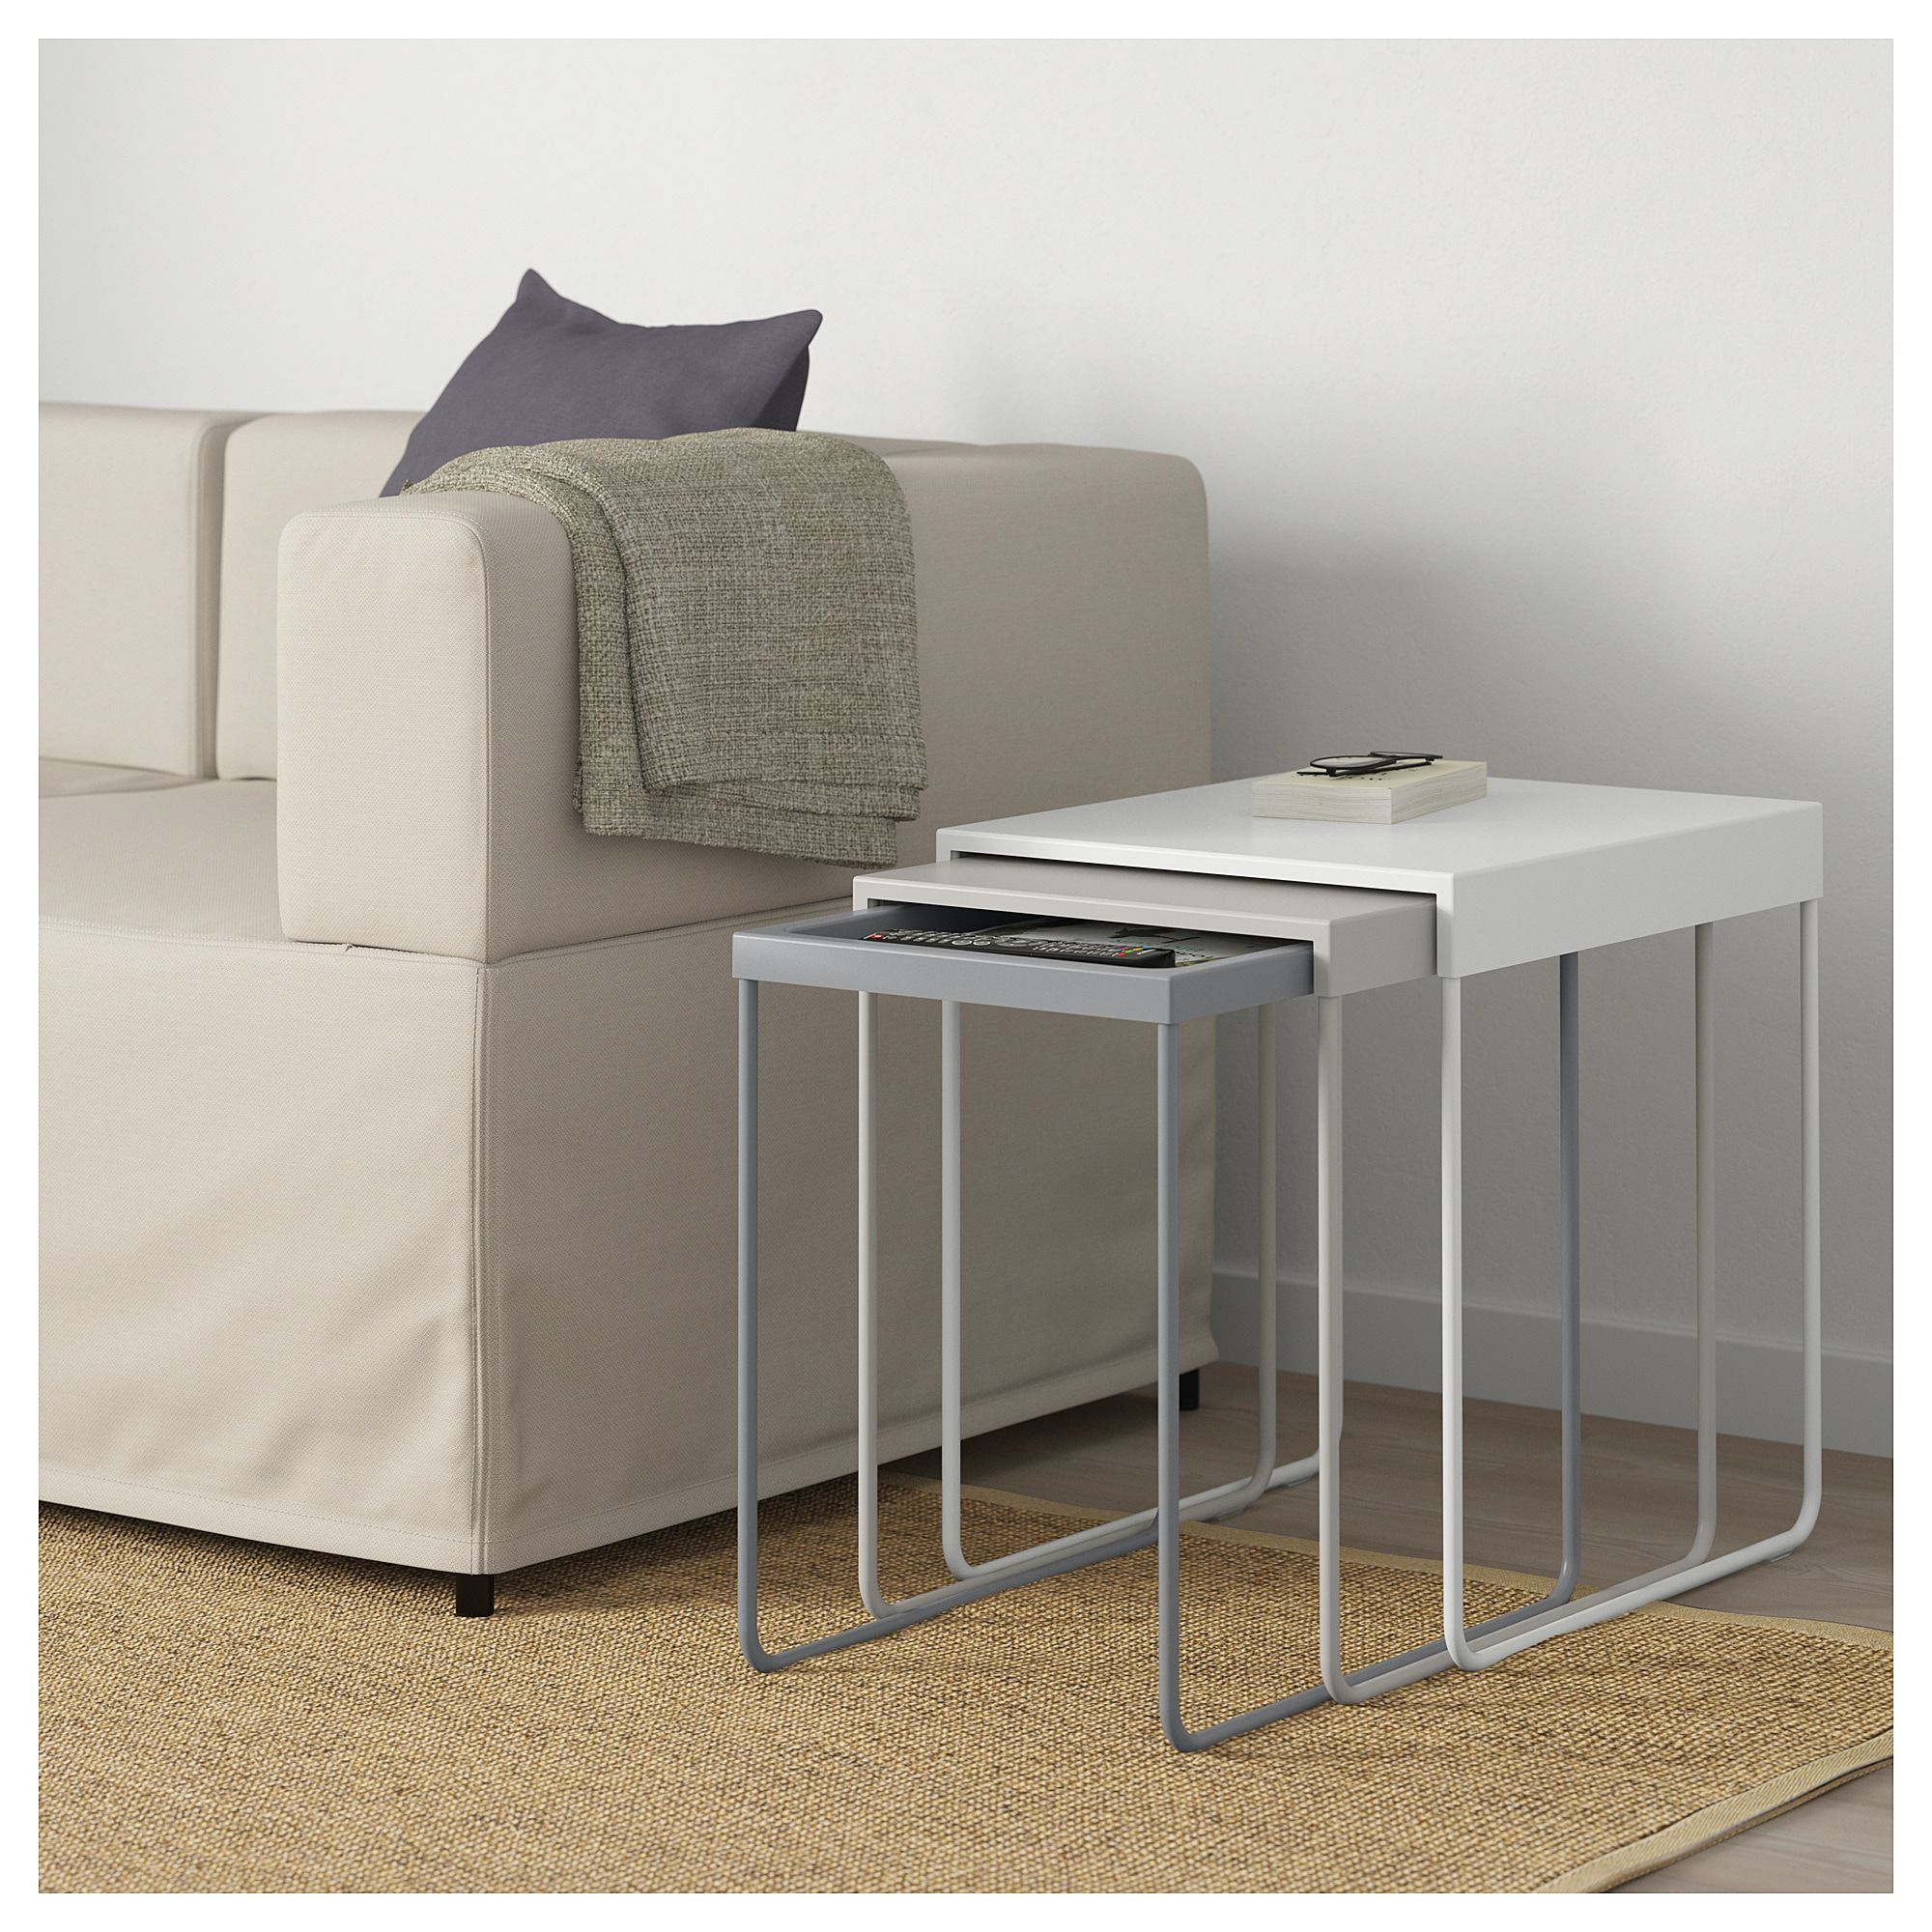 Granboda Nesting Tables Set Of 3 Nesting Tables Storage Spaces Home Accessories